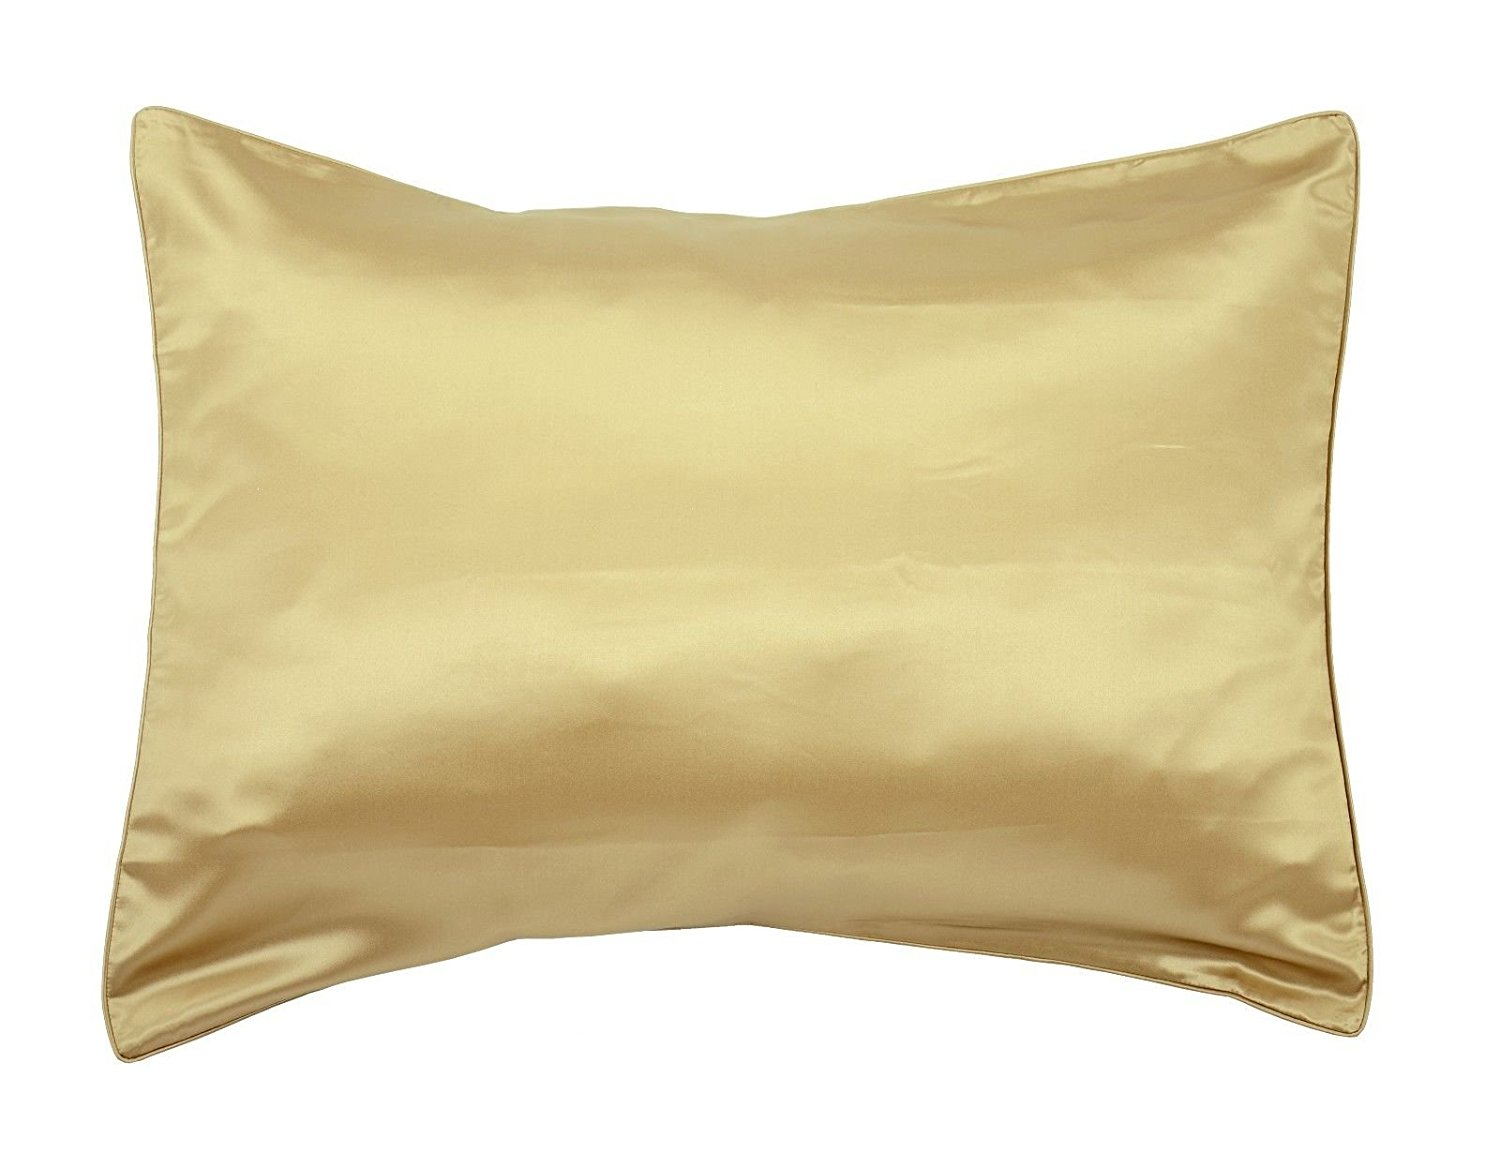 Empress Silk-Pure Mulberry Silk Charmeuse Pillowcase-19 Momme Weight/Light Gold/size Standard